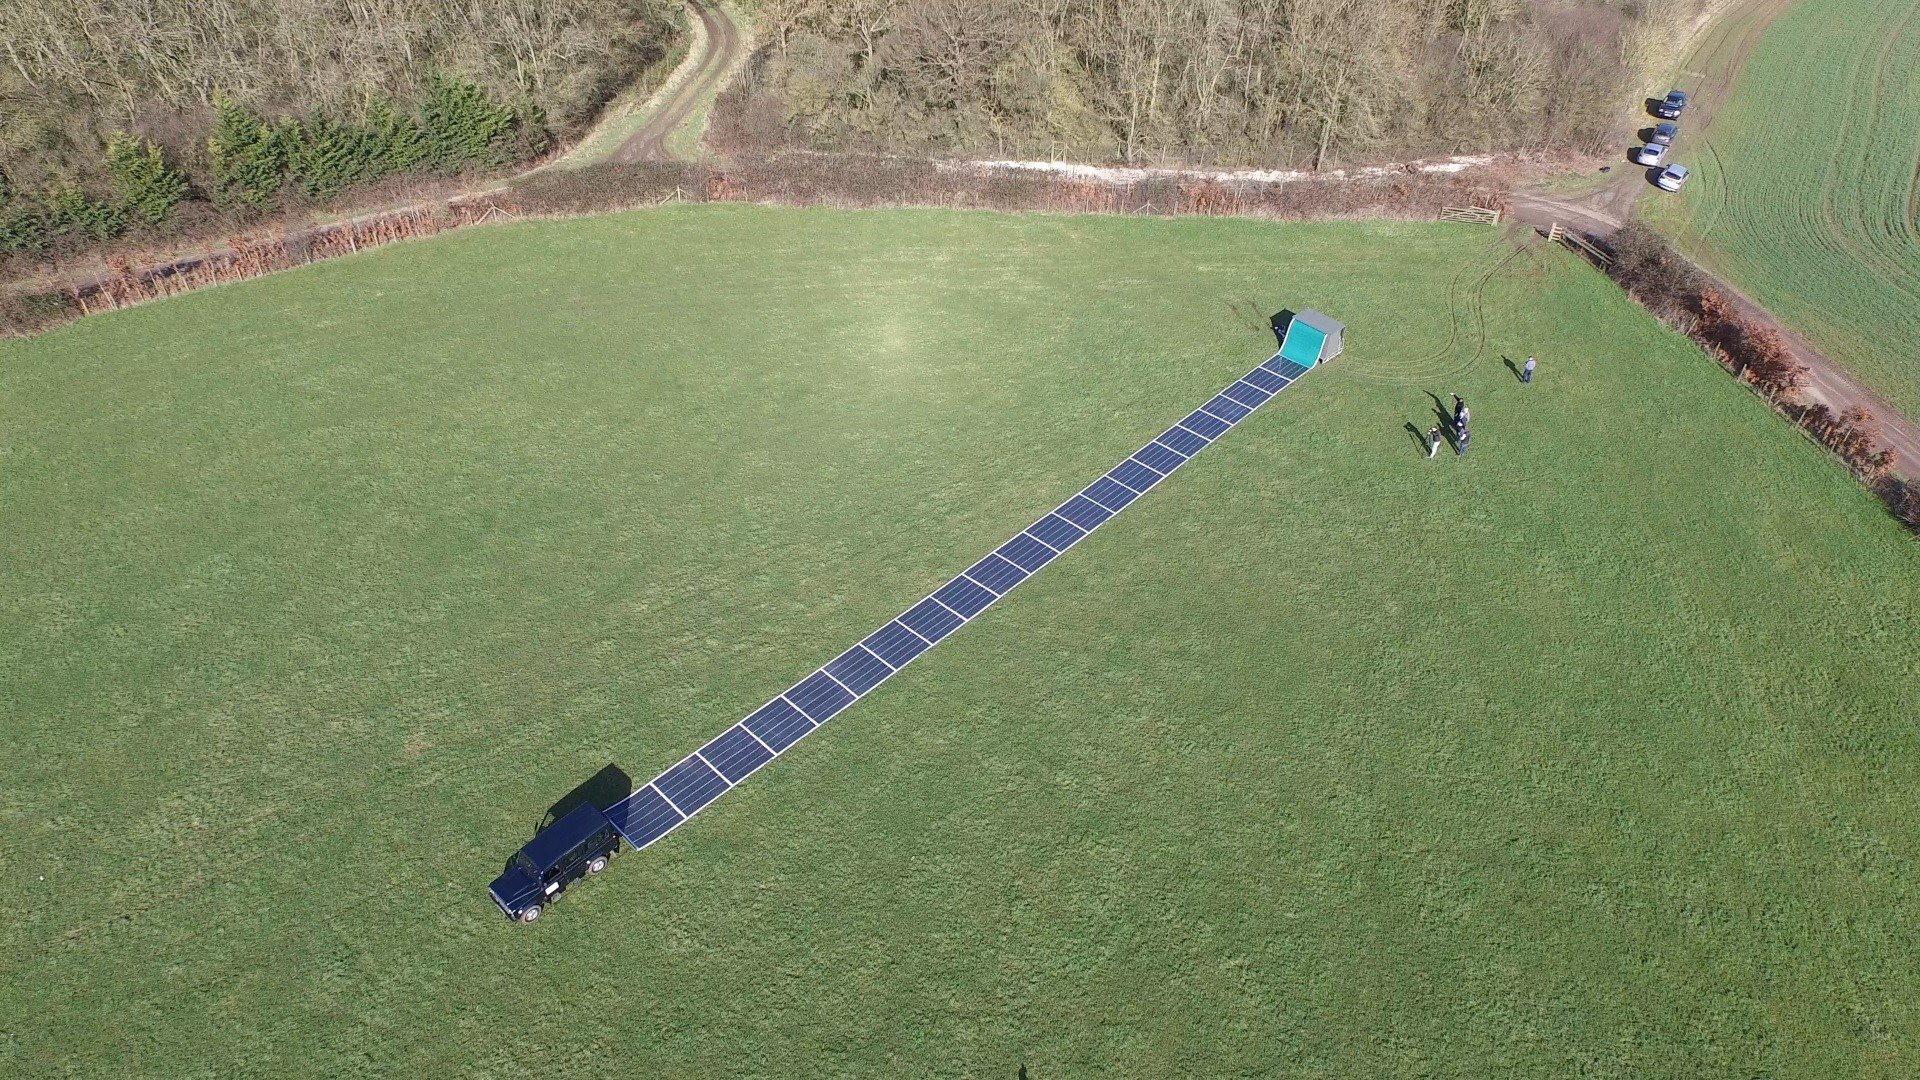 Power System Takes Portable Approach With Roll Up Solar Panels